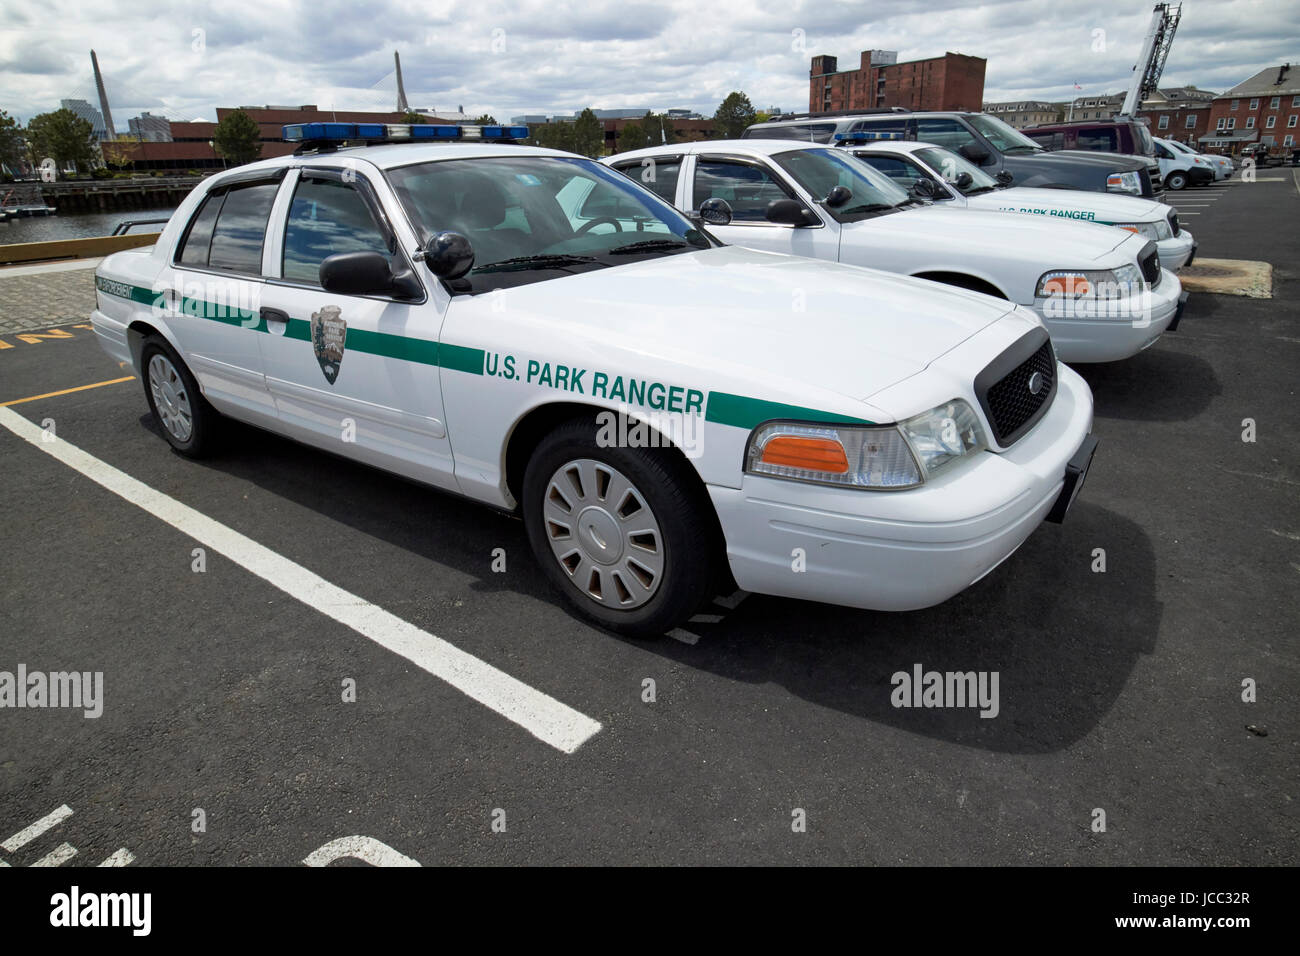 Us national park service u s park ranger ford crown vic vehicle boston usa stock image